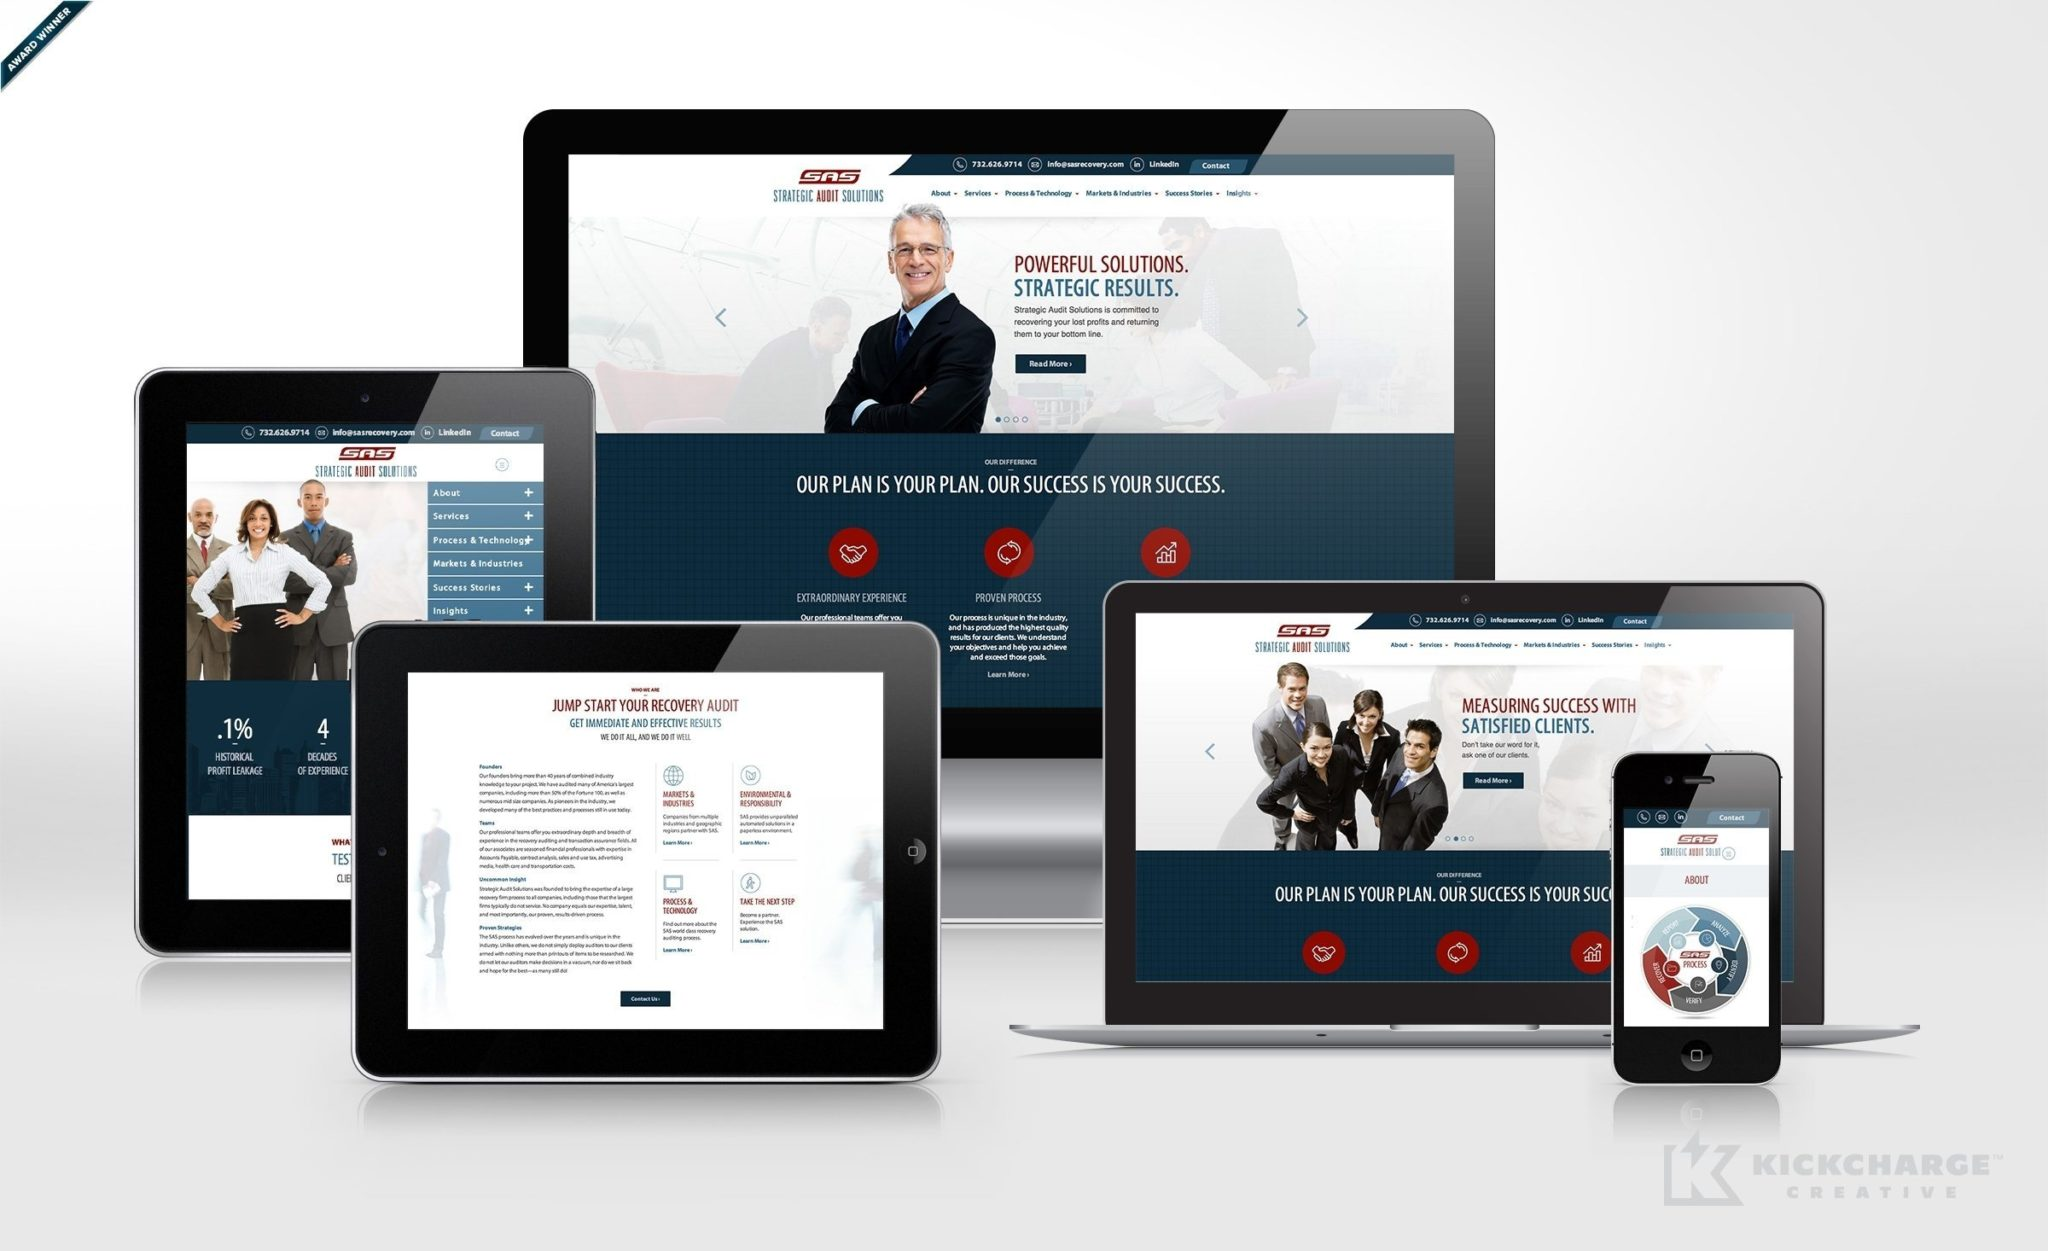 Award winning website design and development for this recovery audit firm. Winner of Website Design: B2B in the 2014 NJ Ad Club Jersey Awards.